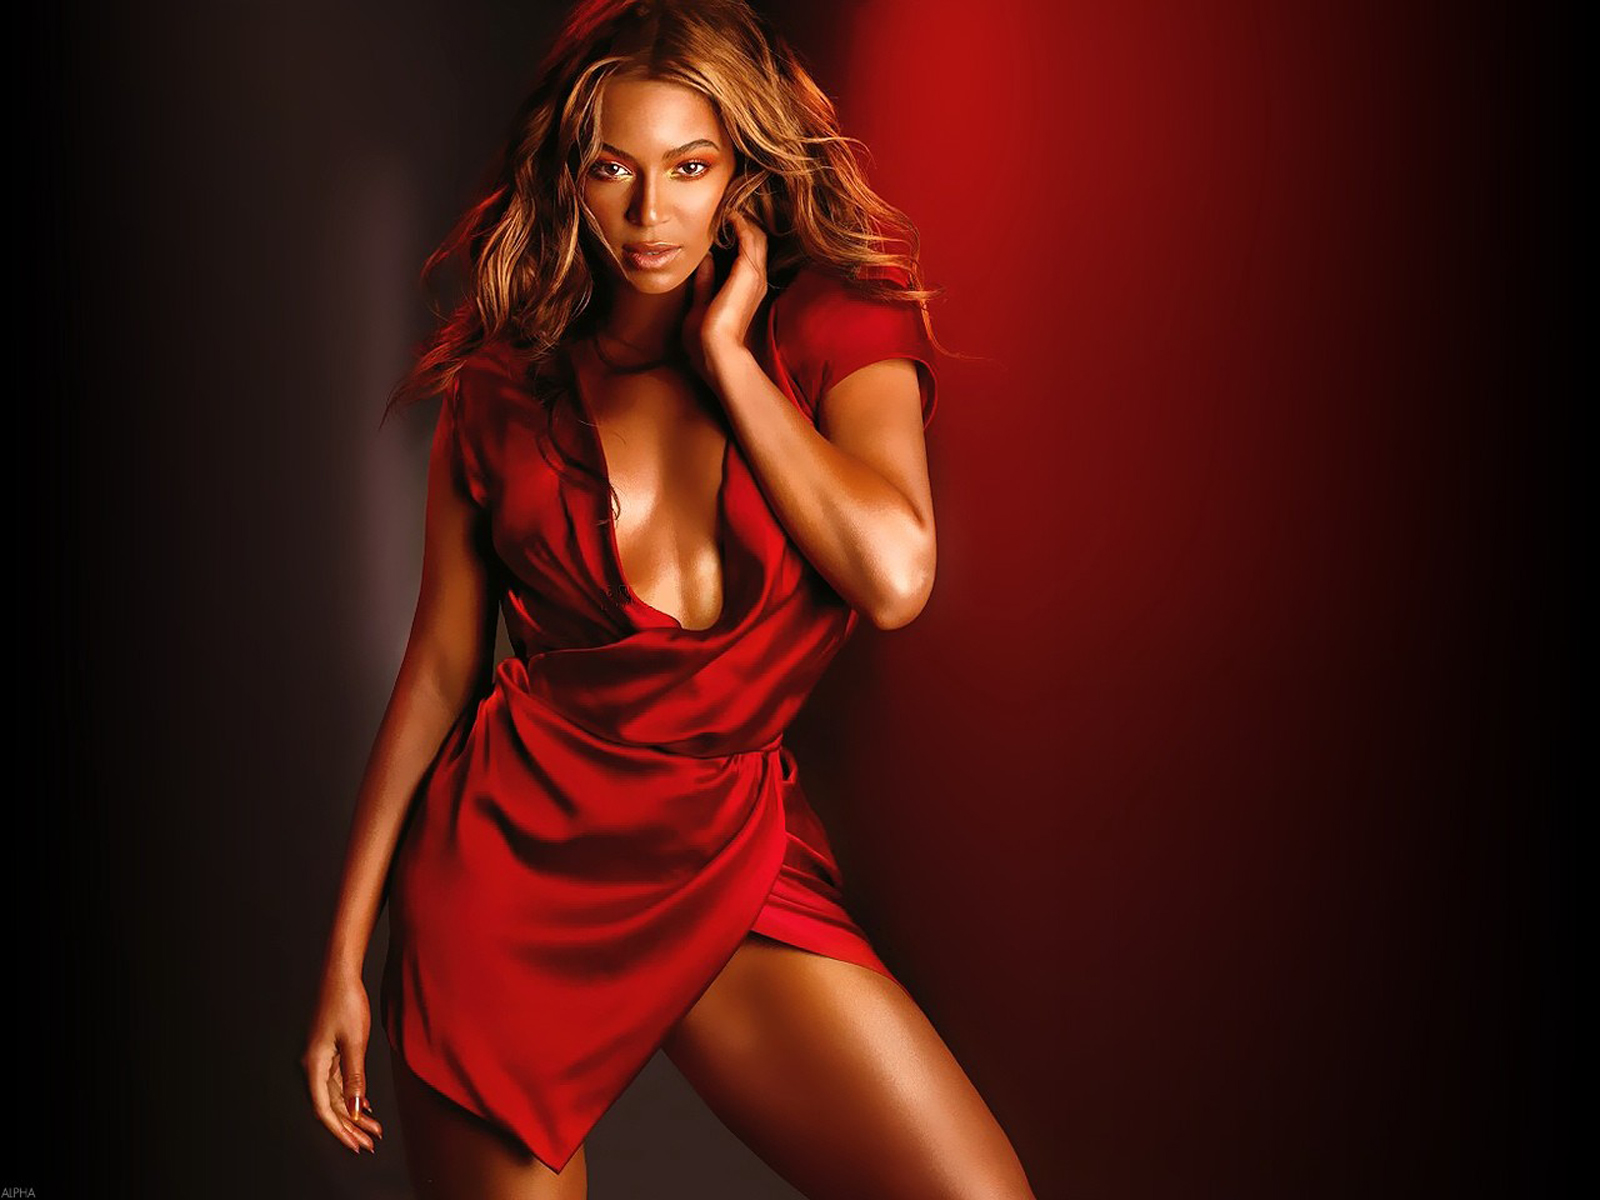 beyonce knowles desktop background - photo #5